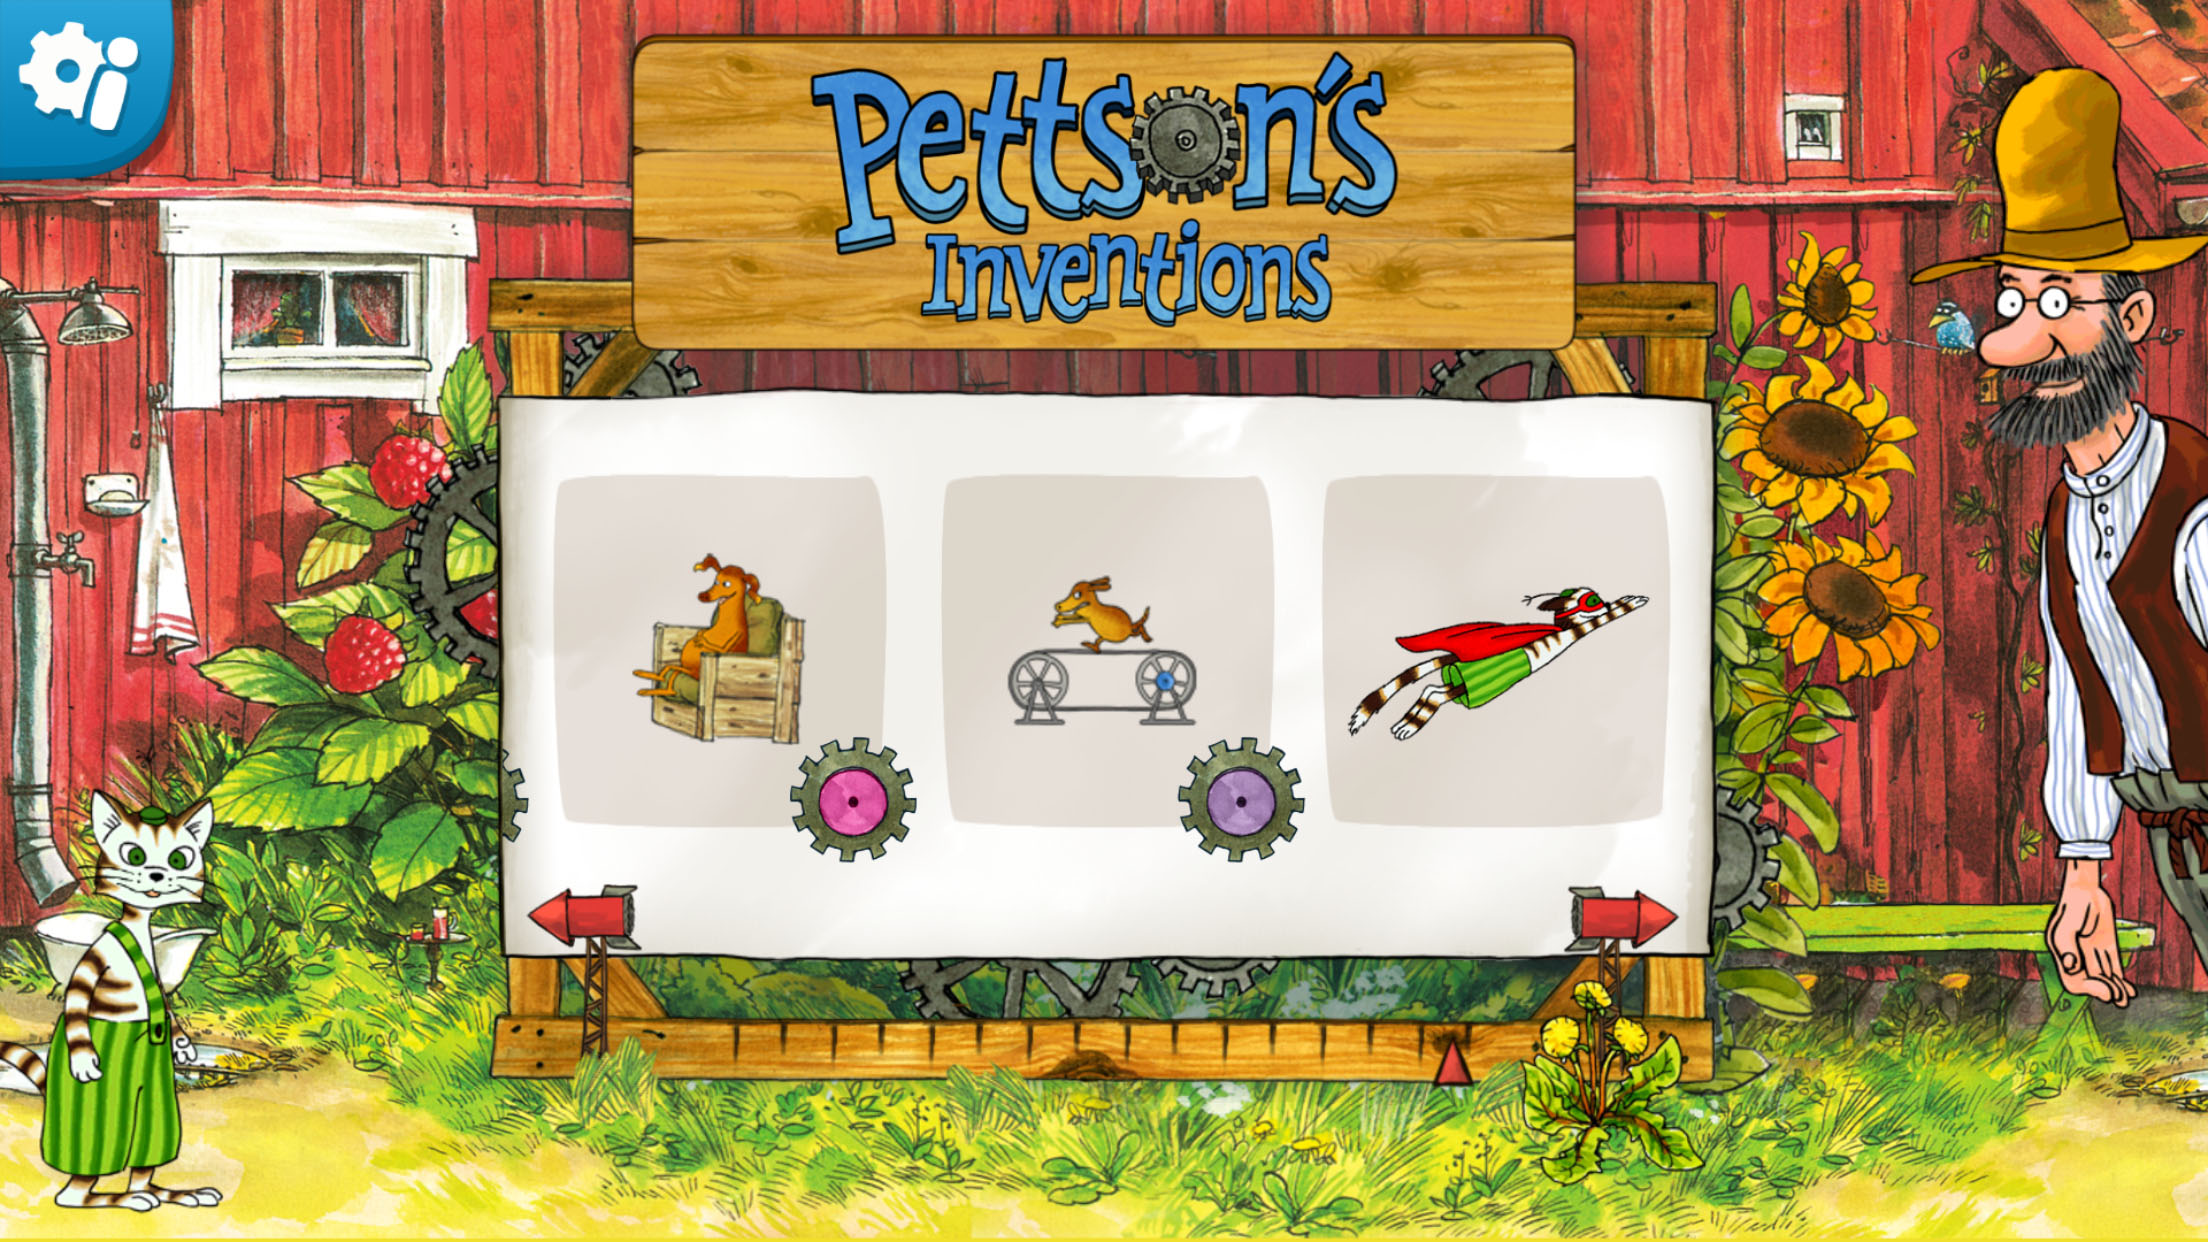 pettson inventions